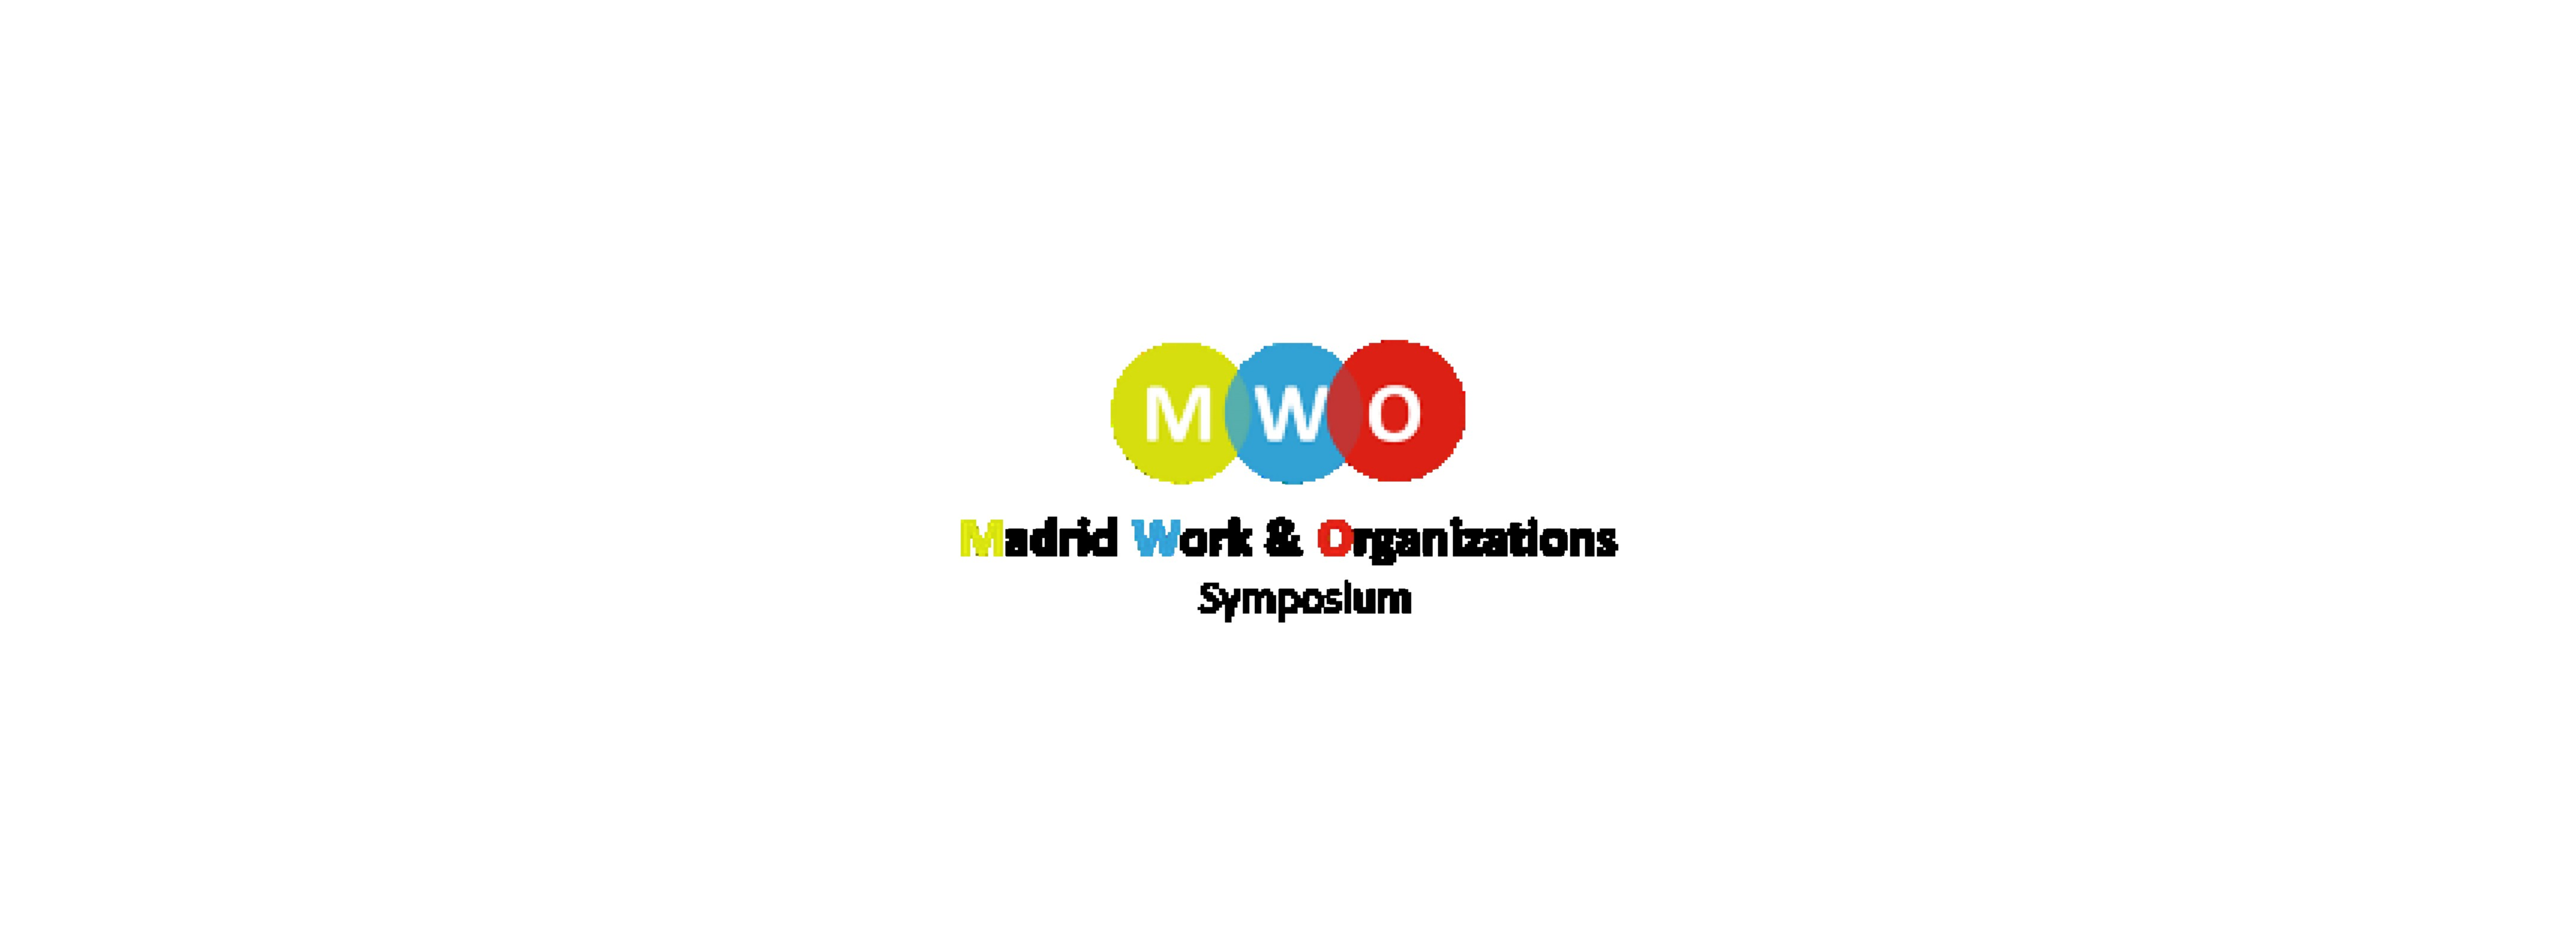 Second Madrid Work and Organizations Symposium